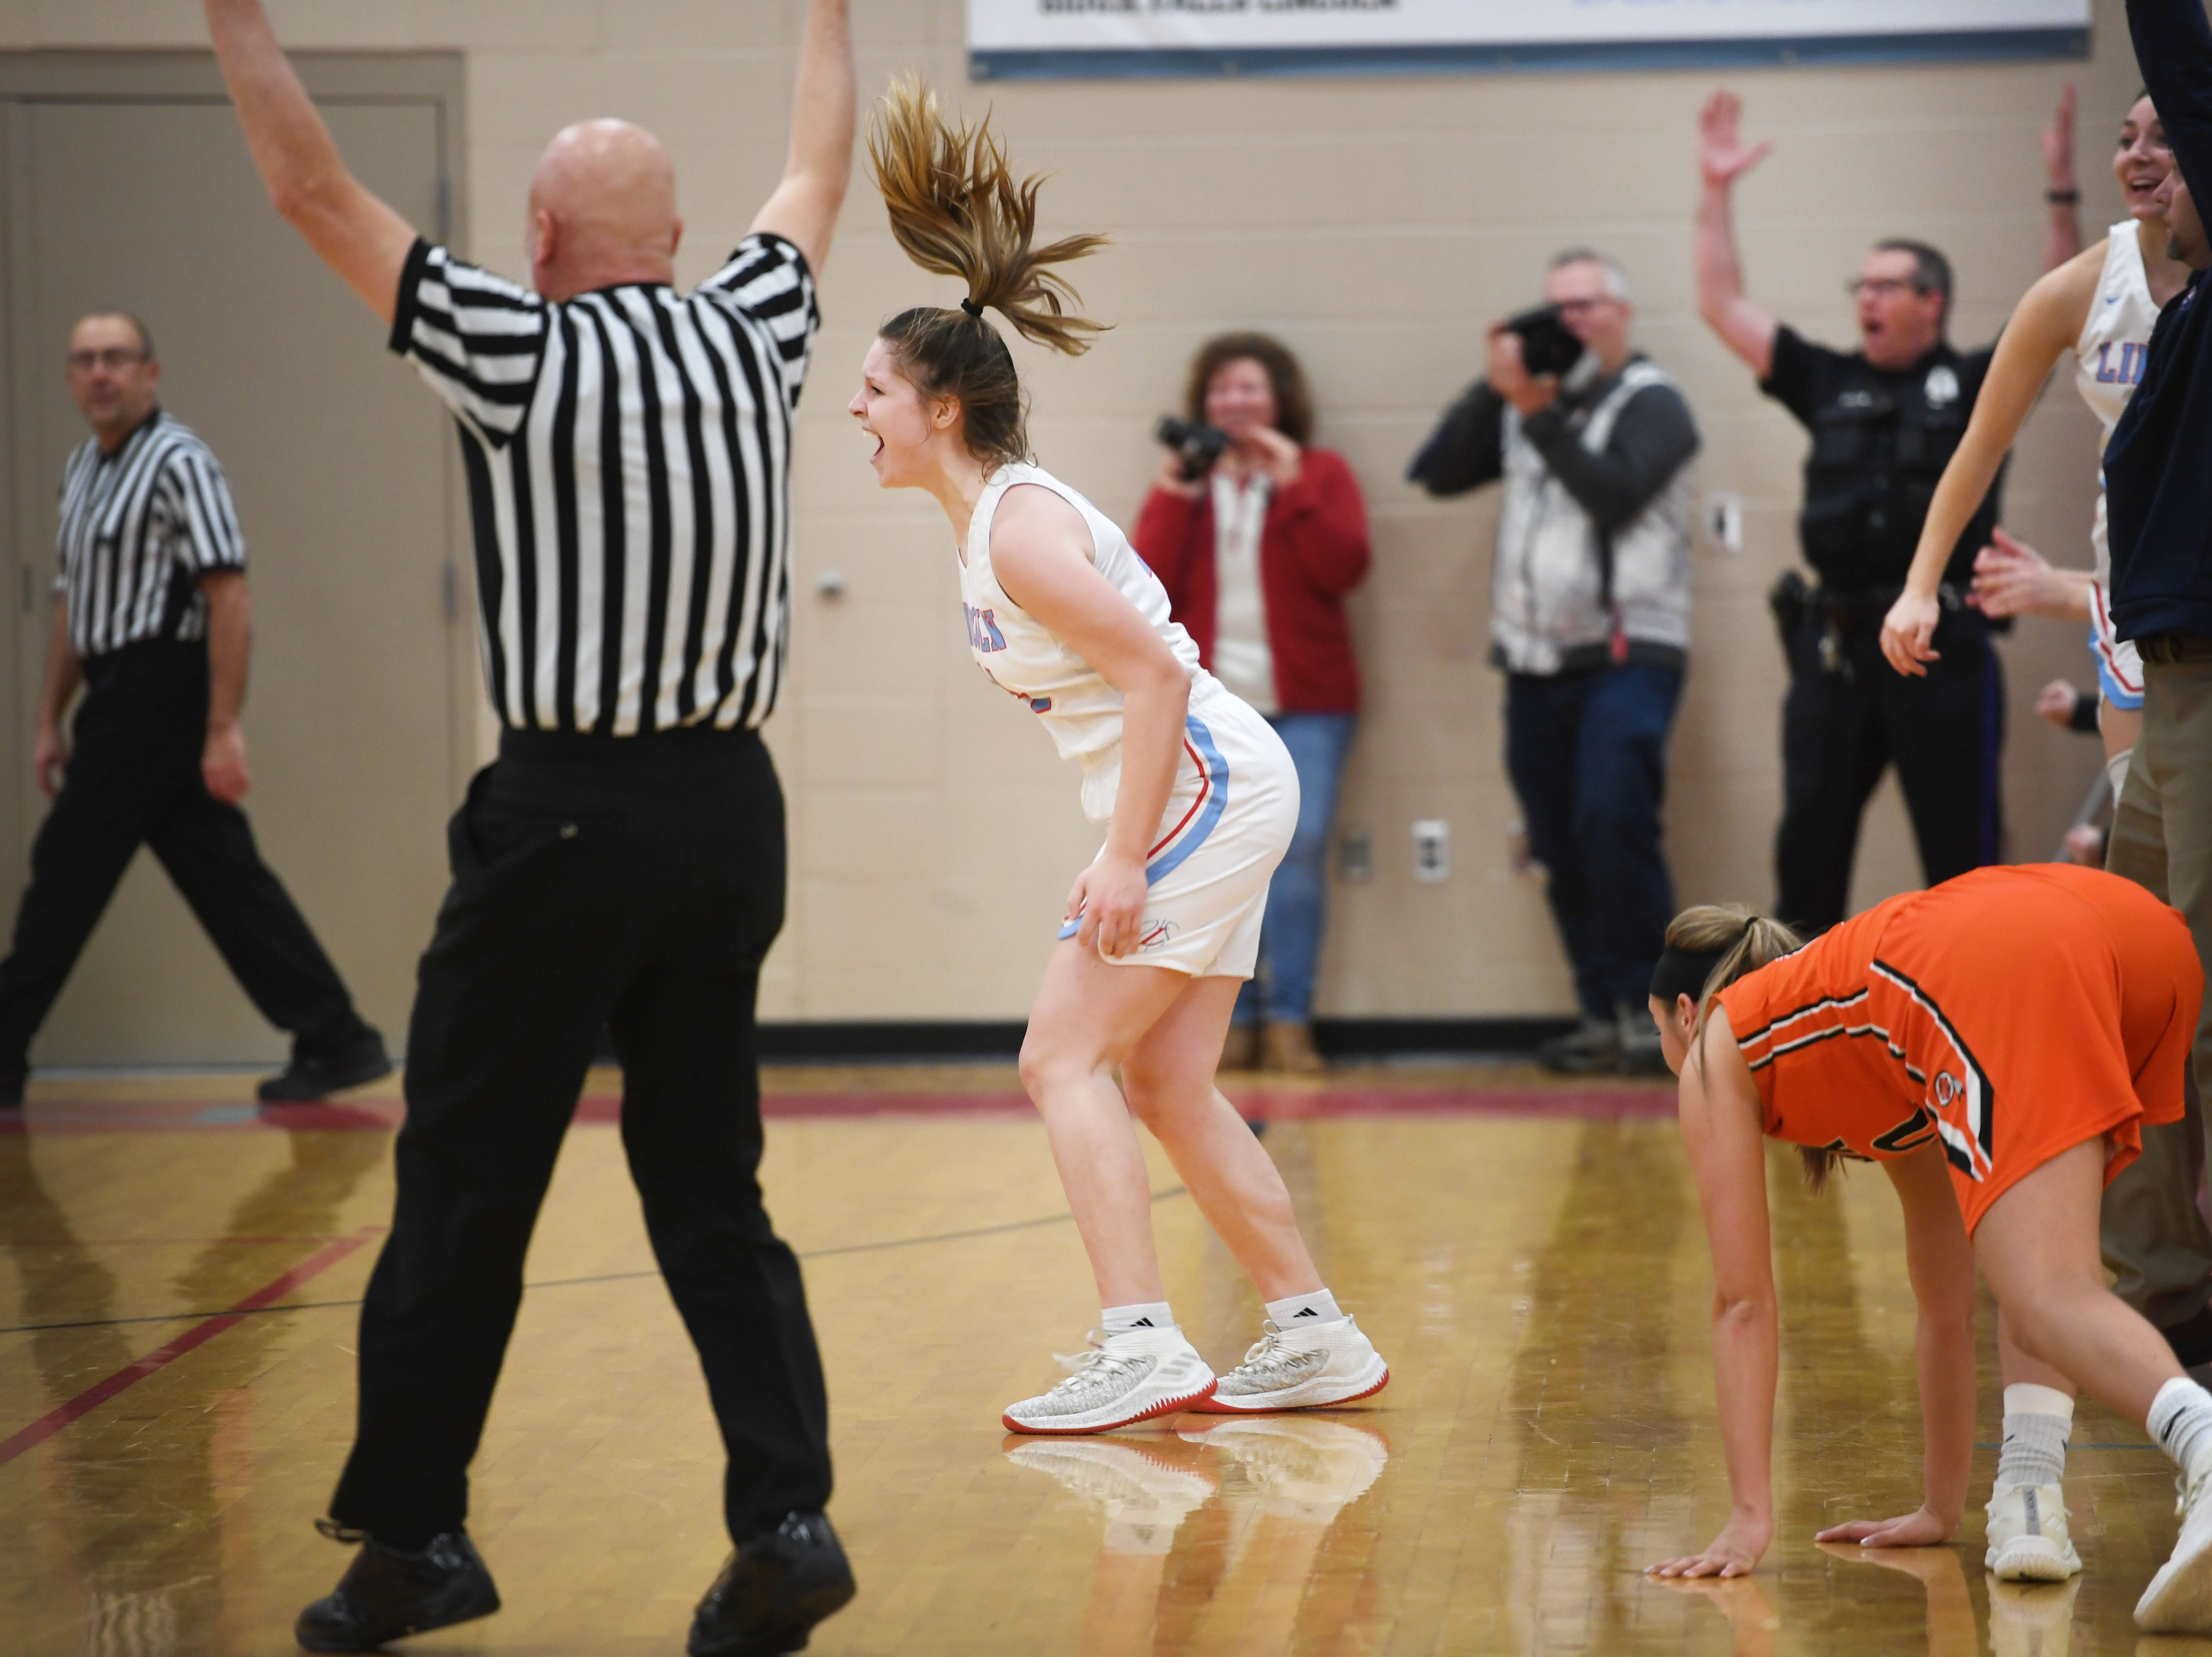 Lincoln's Emma Osmundson lets out a yell after she scores three points in the last seconds of the game against Washington Thursday, Jan. 24, at Lincoln. Lincoln won 63-62 against Washington.